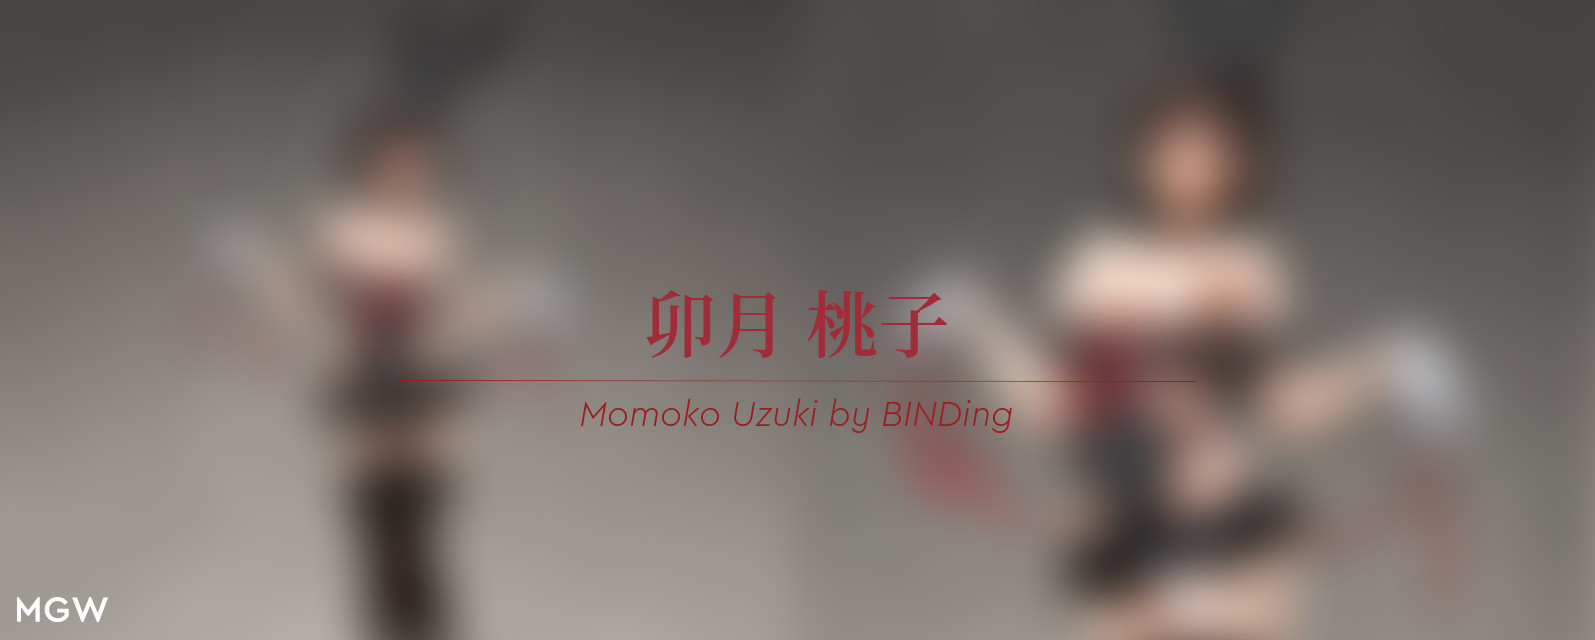 Momoko Uzuki by BINDing from BINDing Creator's Opinion MGW Header